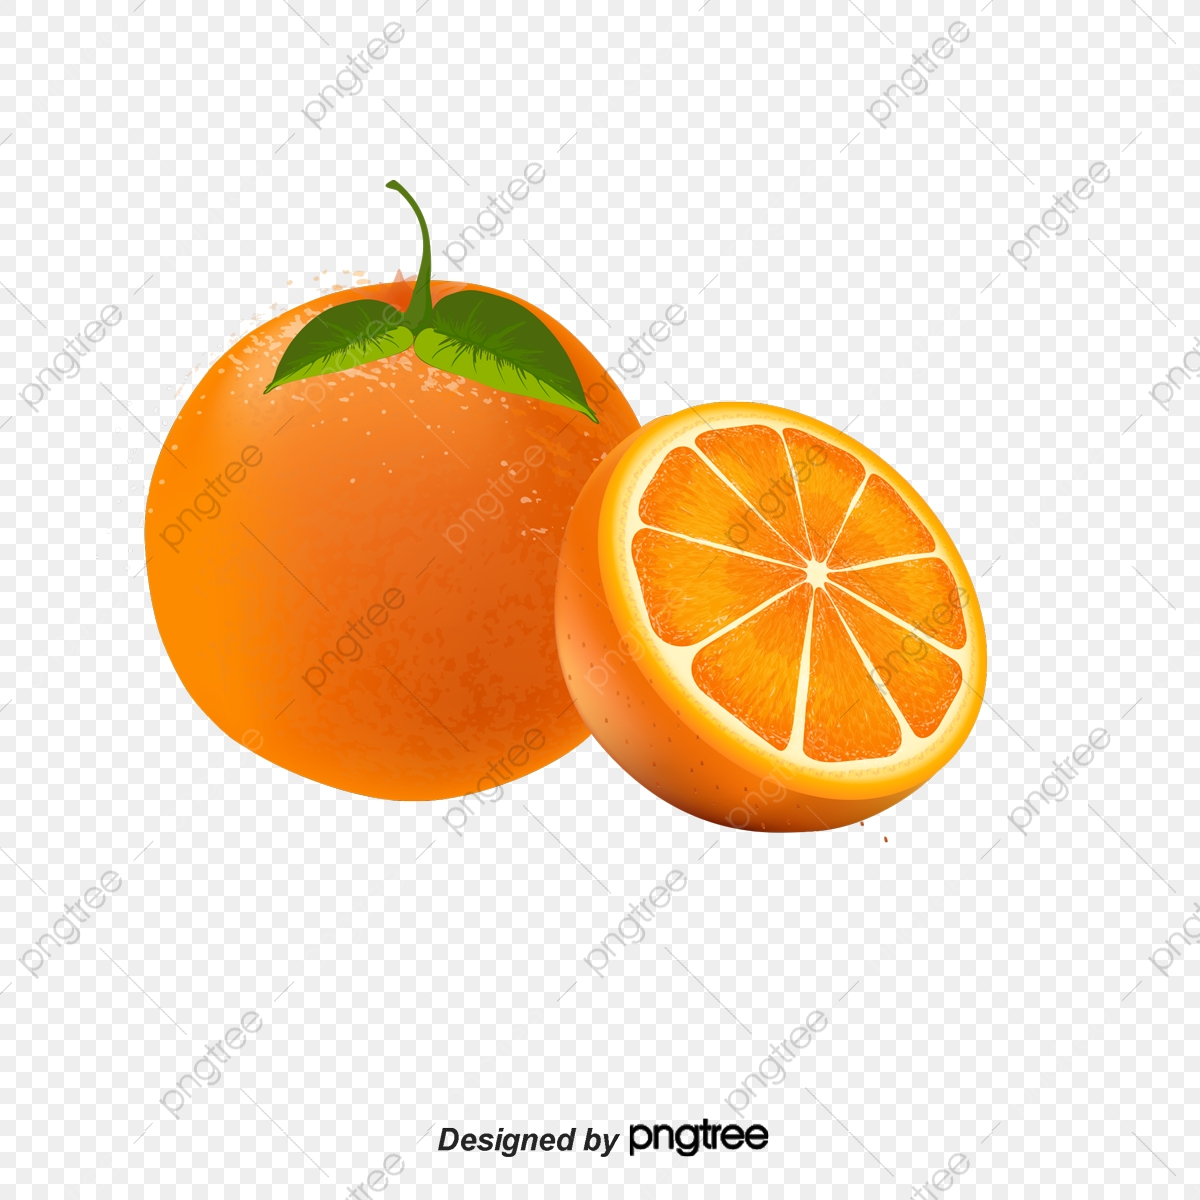 hight resolution of commercial use resource upgrade to premium plan and get license authorization upgradenow floating orange juice orange clipart